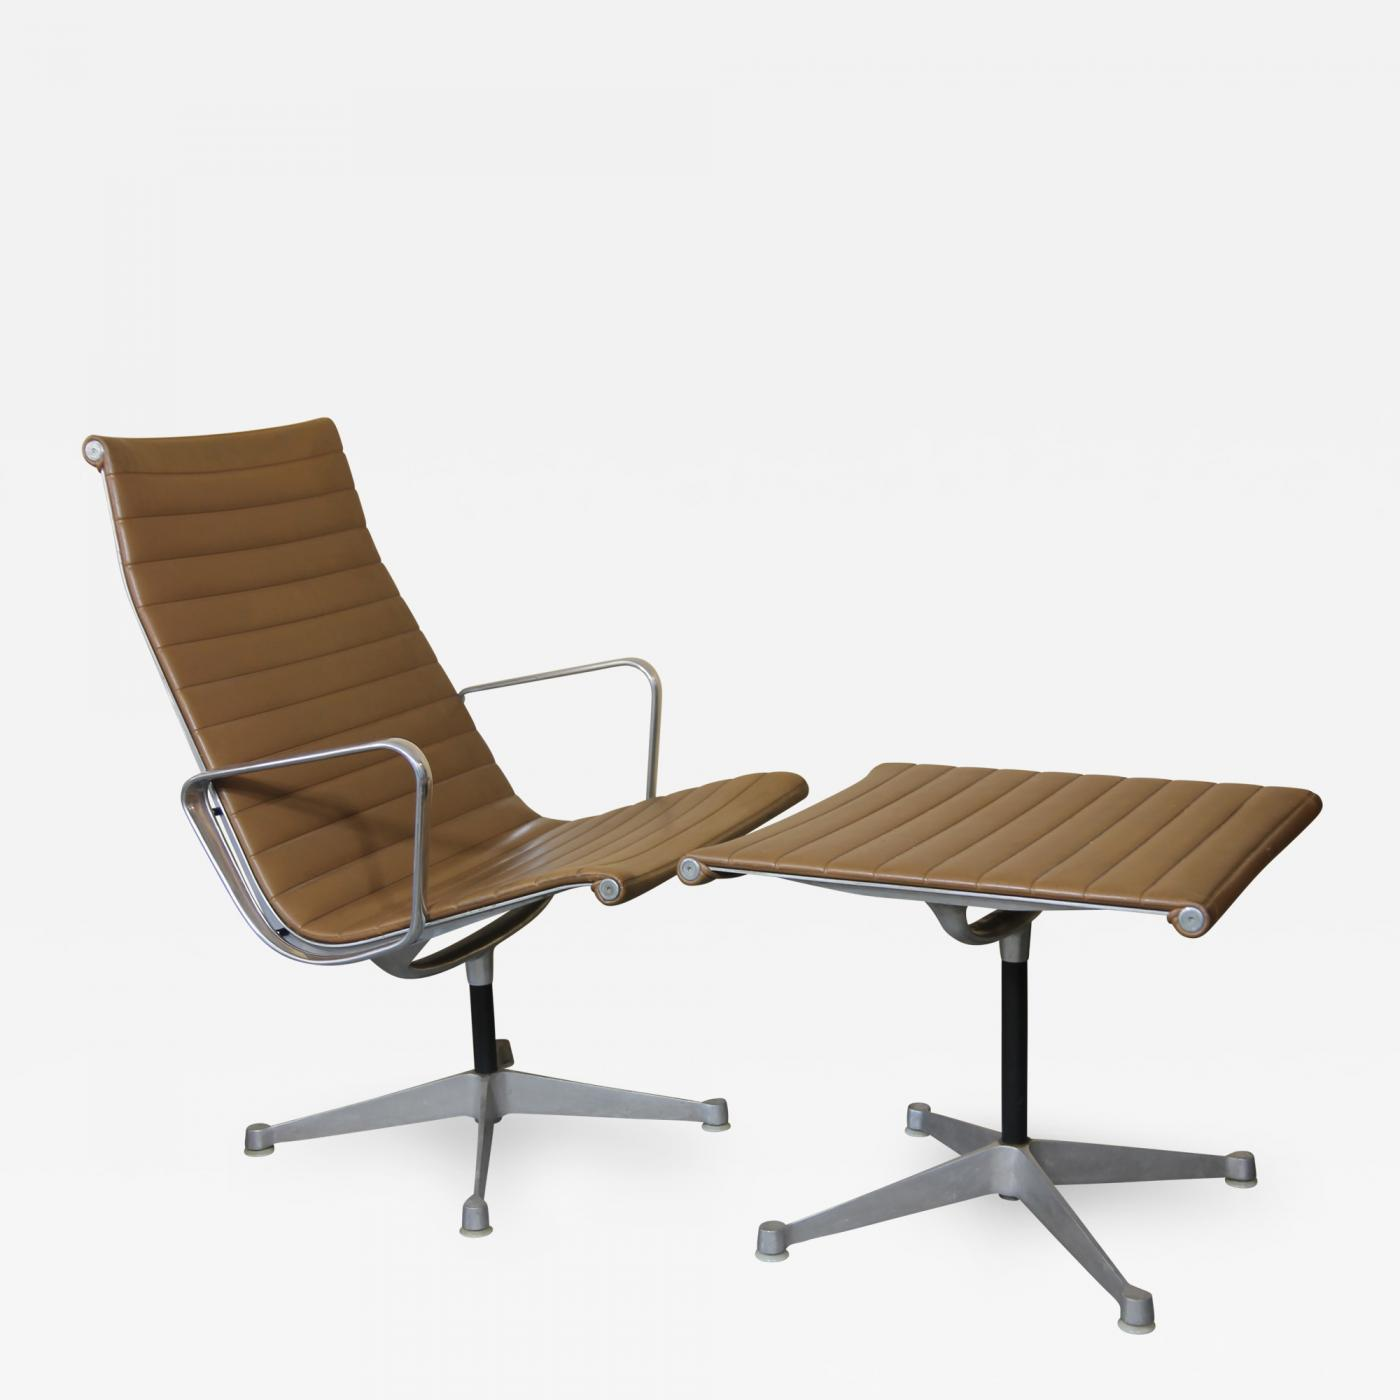 Outstanding Charles Ray Eames Charles Eames Aluminum Group Lounge Chair And Rare Ottoman Cjindustries Chair Design For Home Cjindustriesco